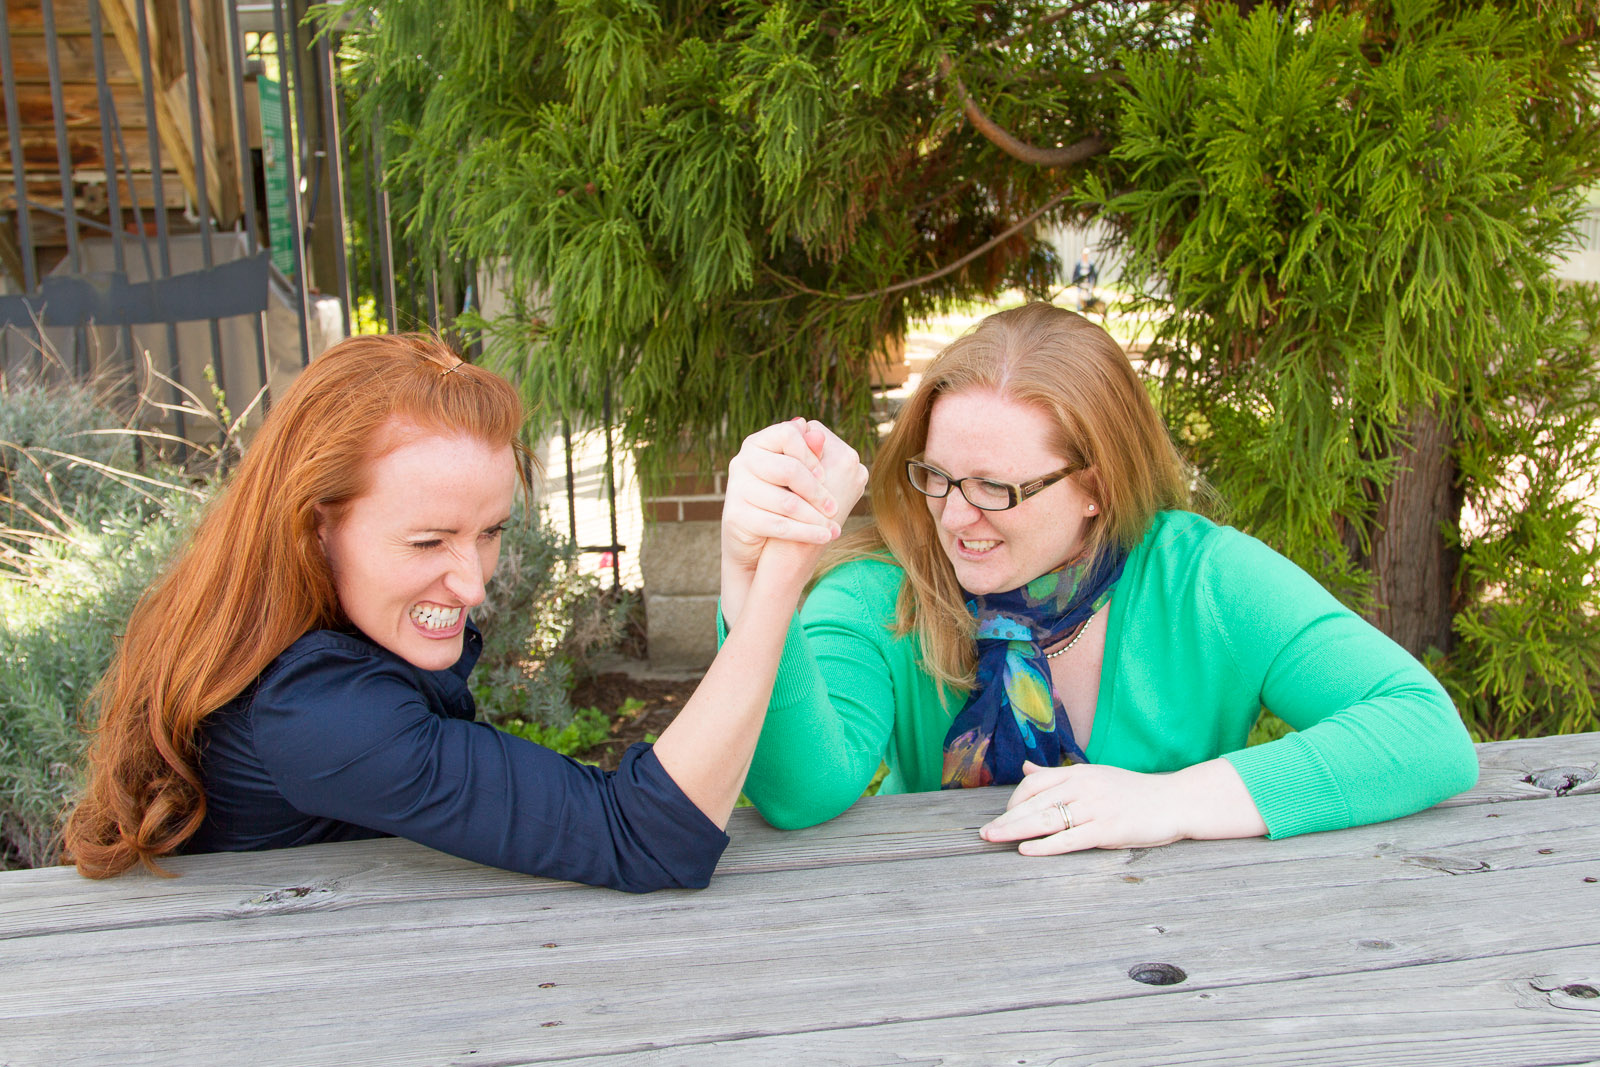 Family Photos - Arm Wrestling Sisters